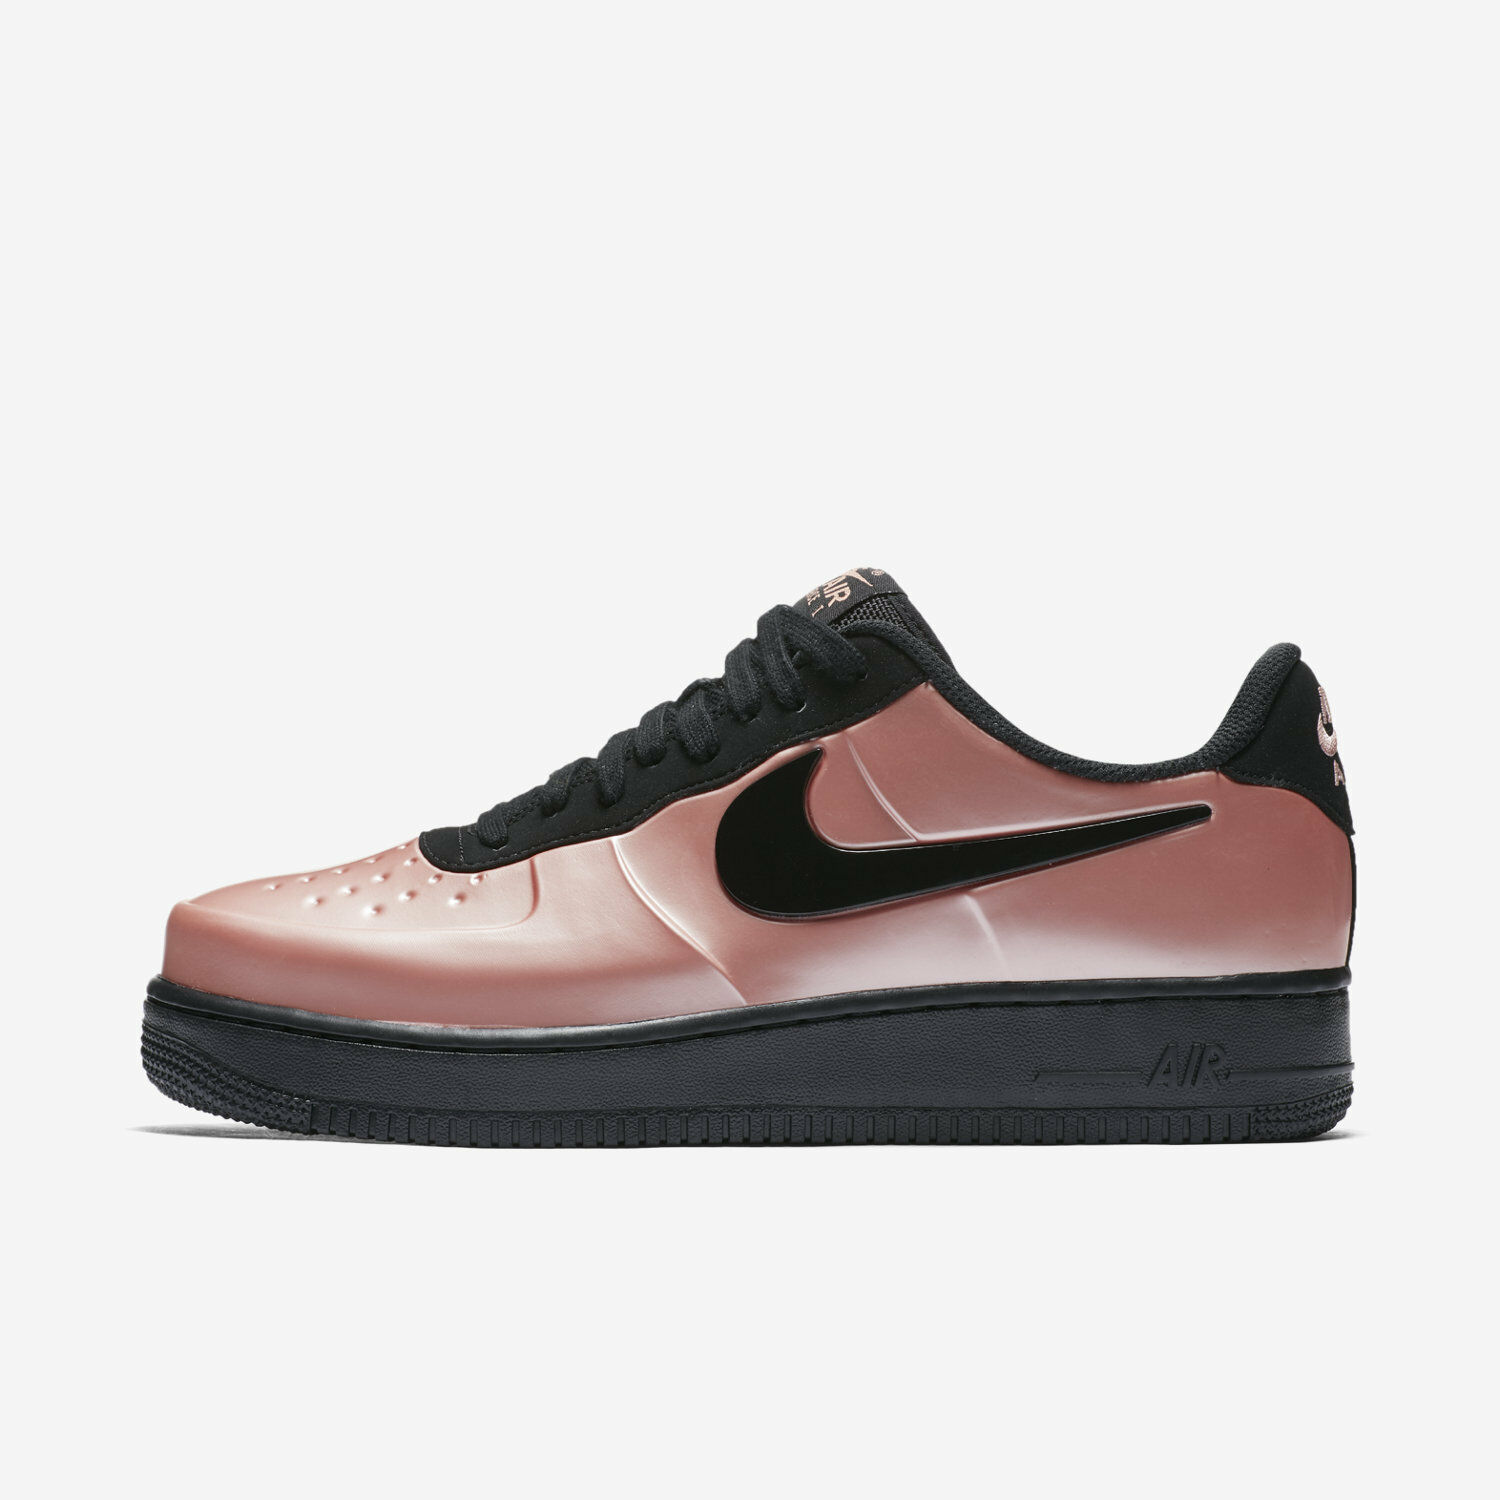 Nike air force 1 af 1 nero foamposite pro cup coral stardust nero 1 aj3664-600 sz 10 8f2c96